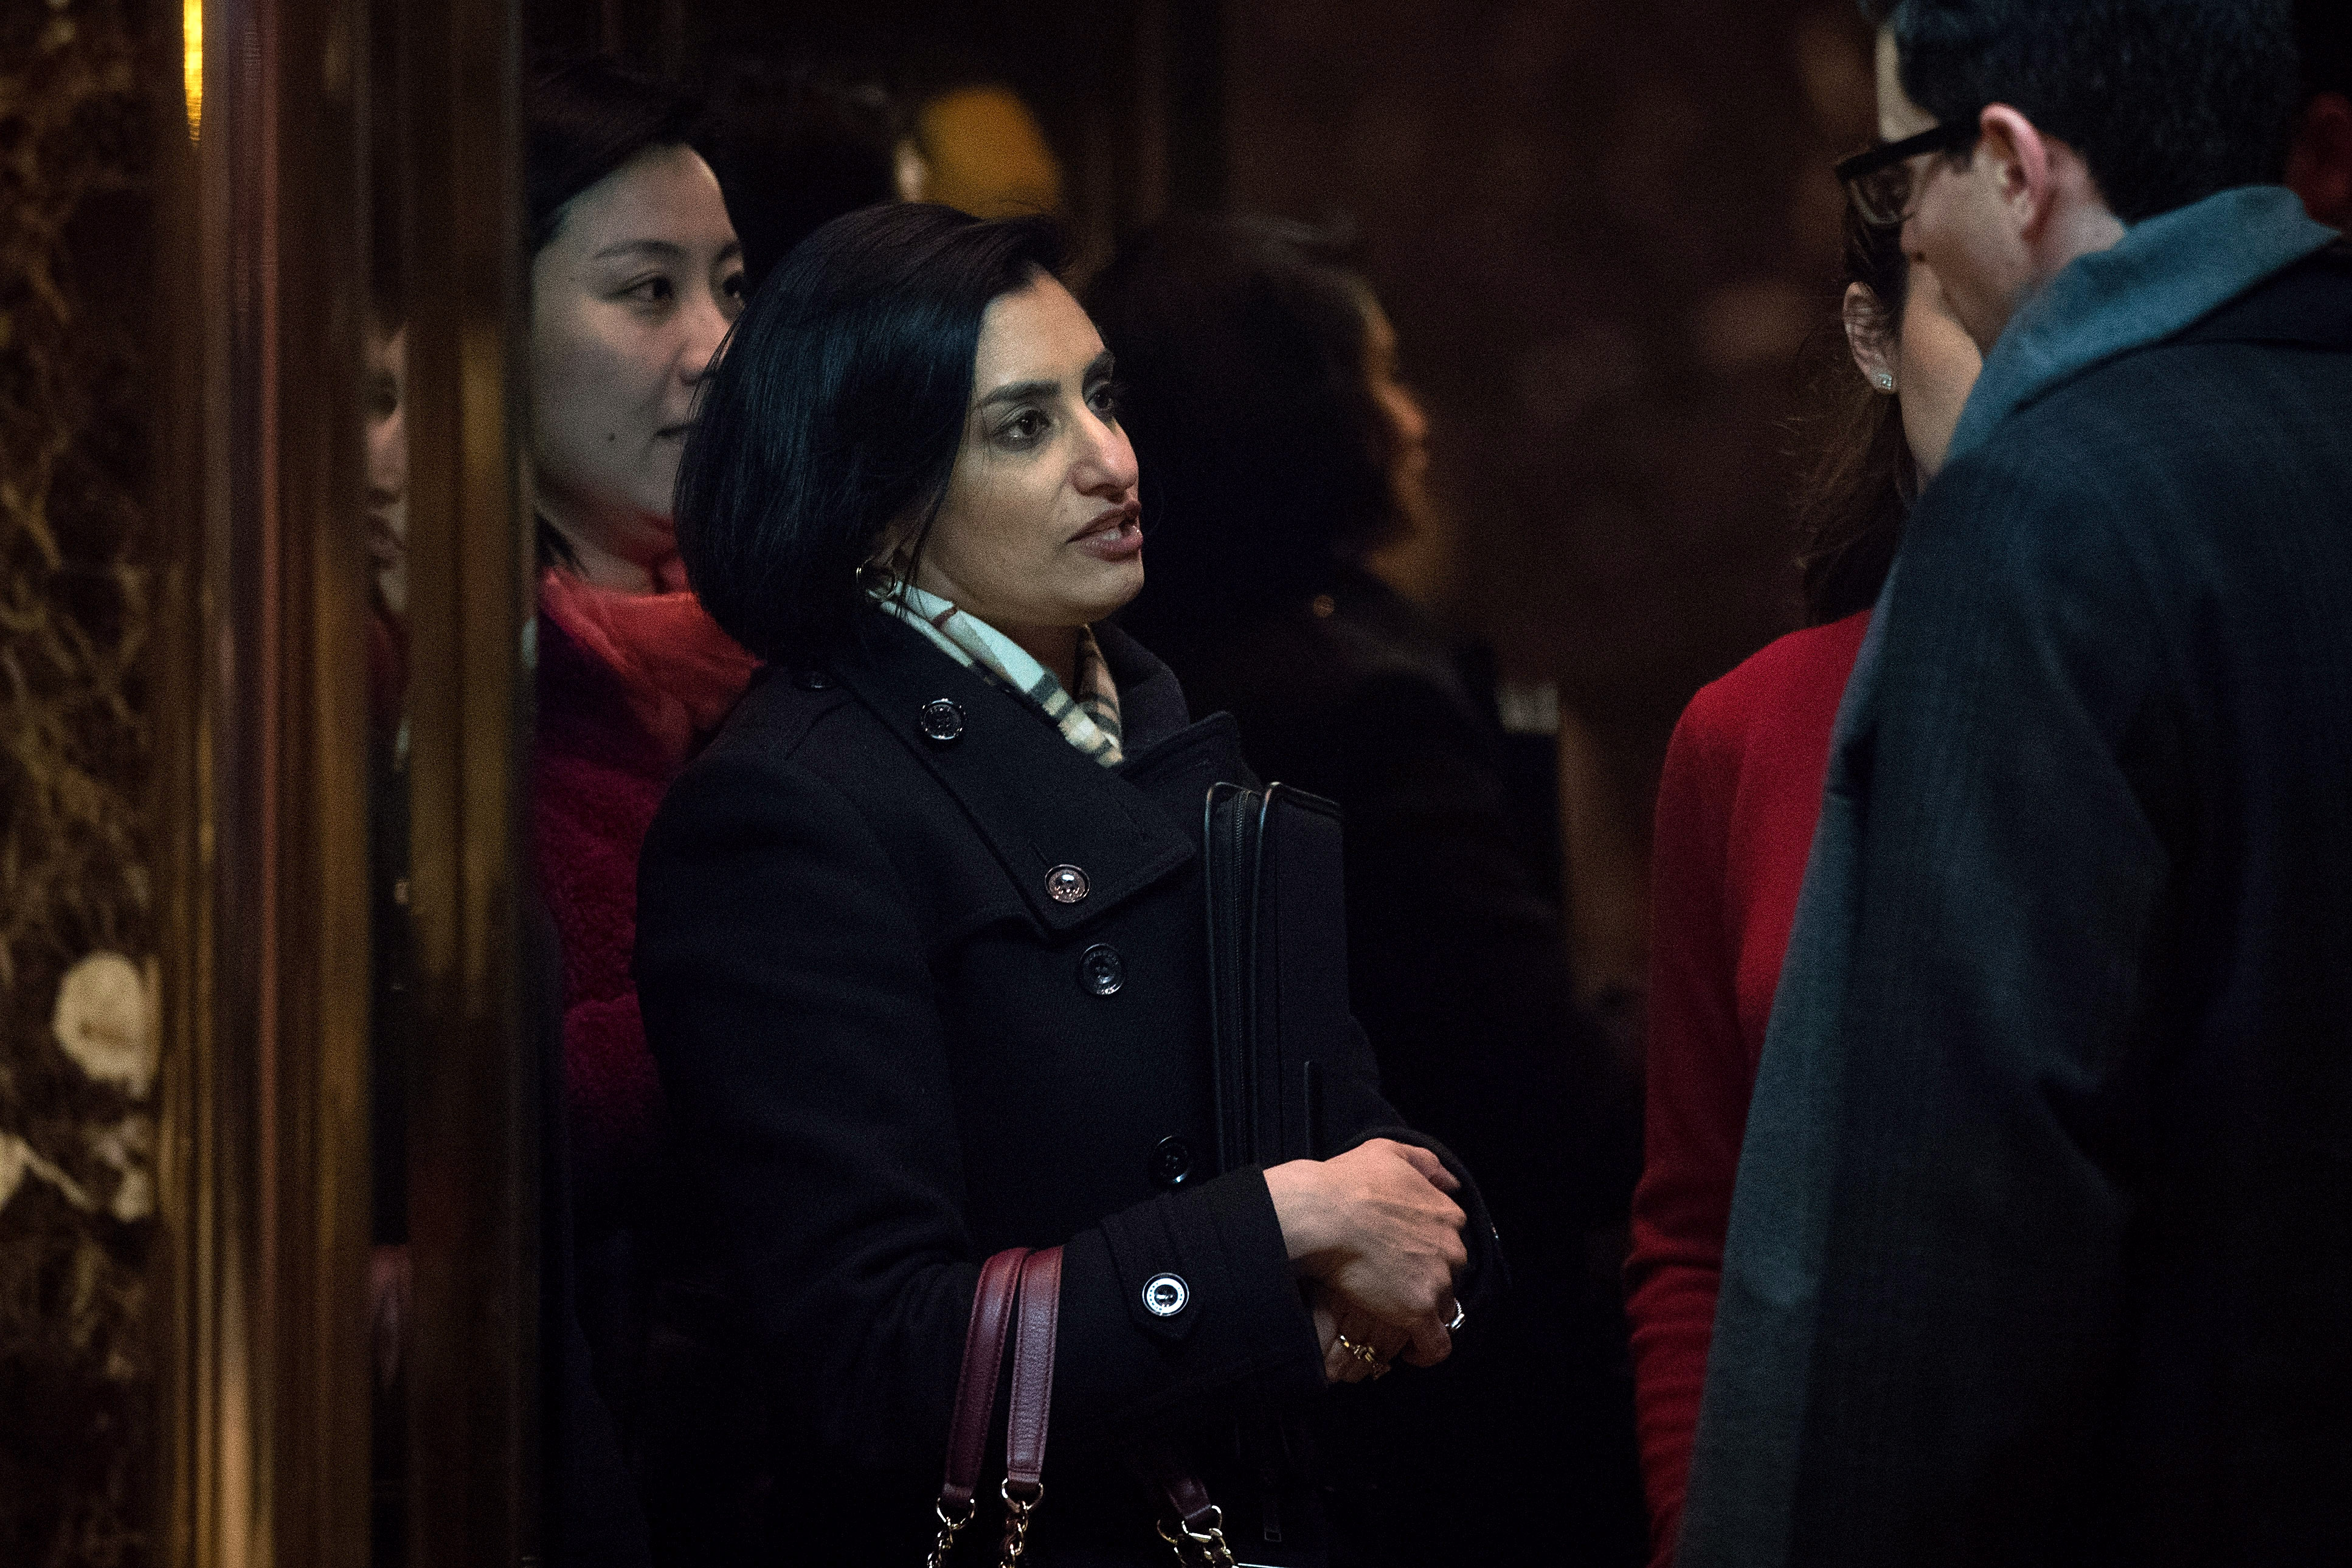 Seema Verma, president and founder of SVC Inc., gets into an elevator as she arrives at Trump Tower in New York City.